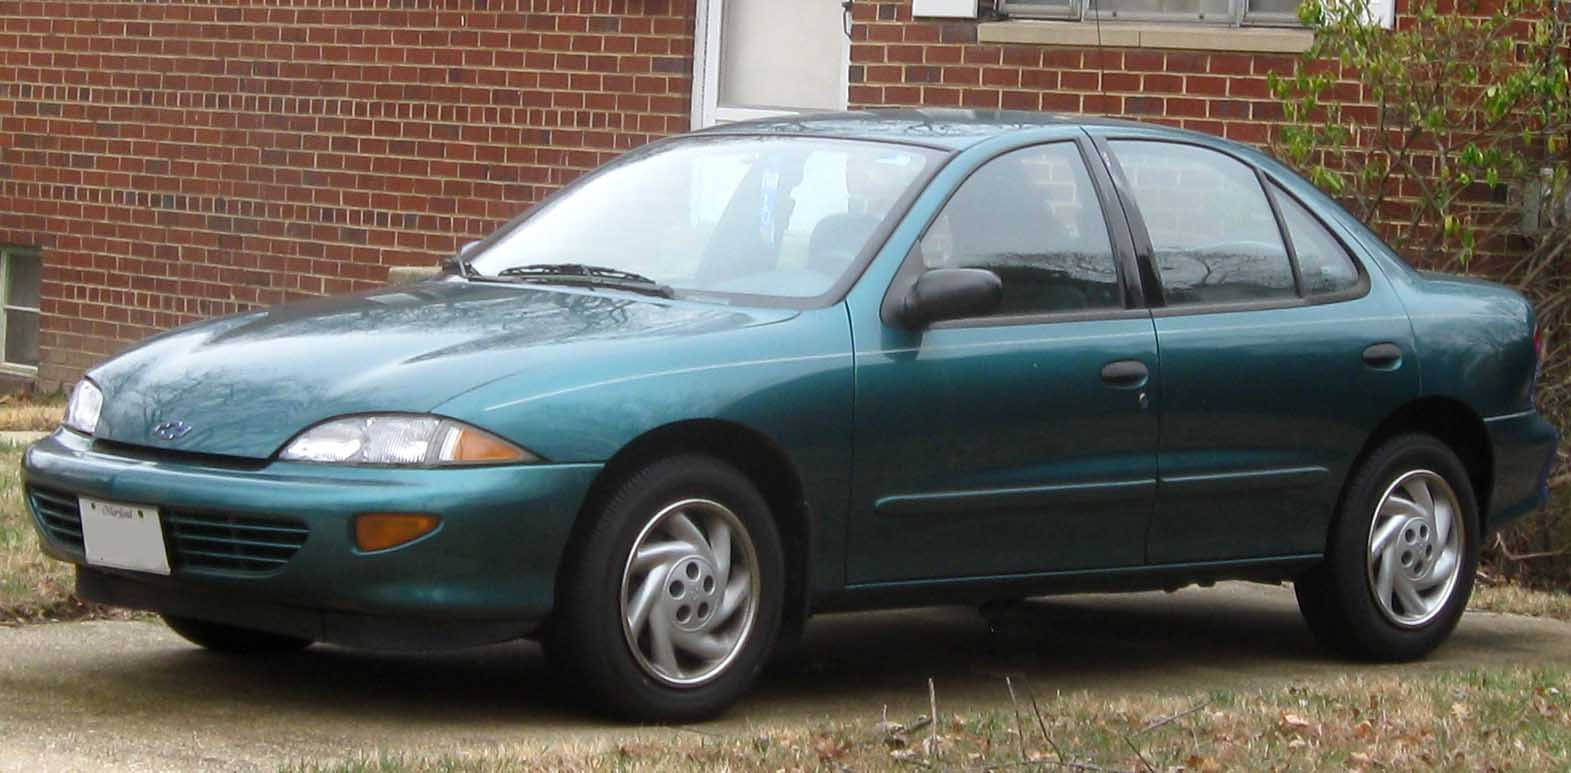 Cavalier chevy cavalier 99 : File:95-99 Chevrolet Cavalier sedan .jpg - Wikimedia Commons